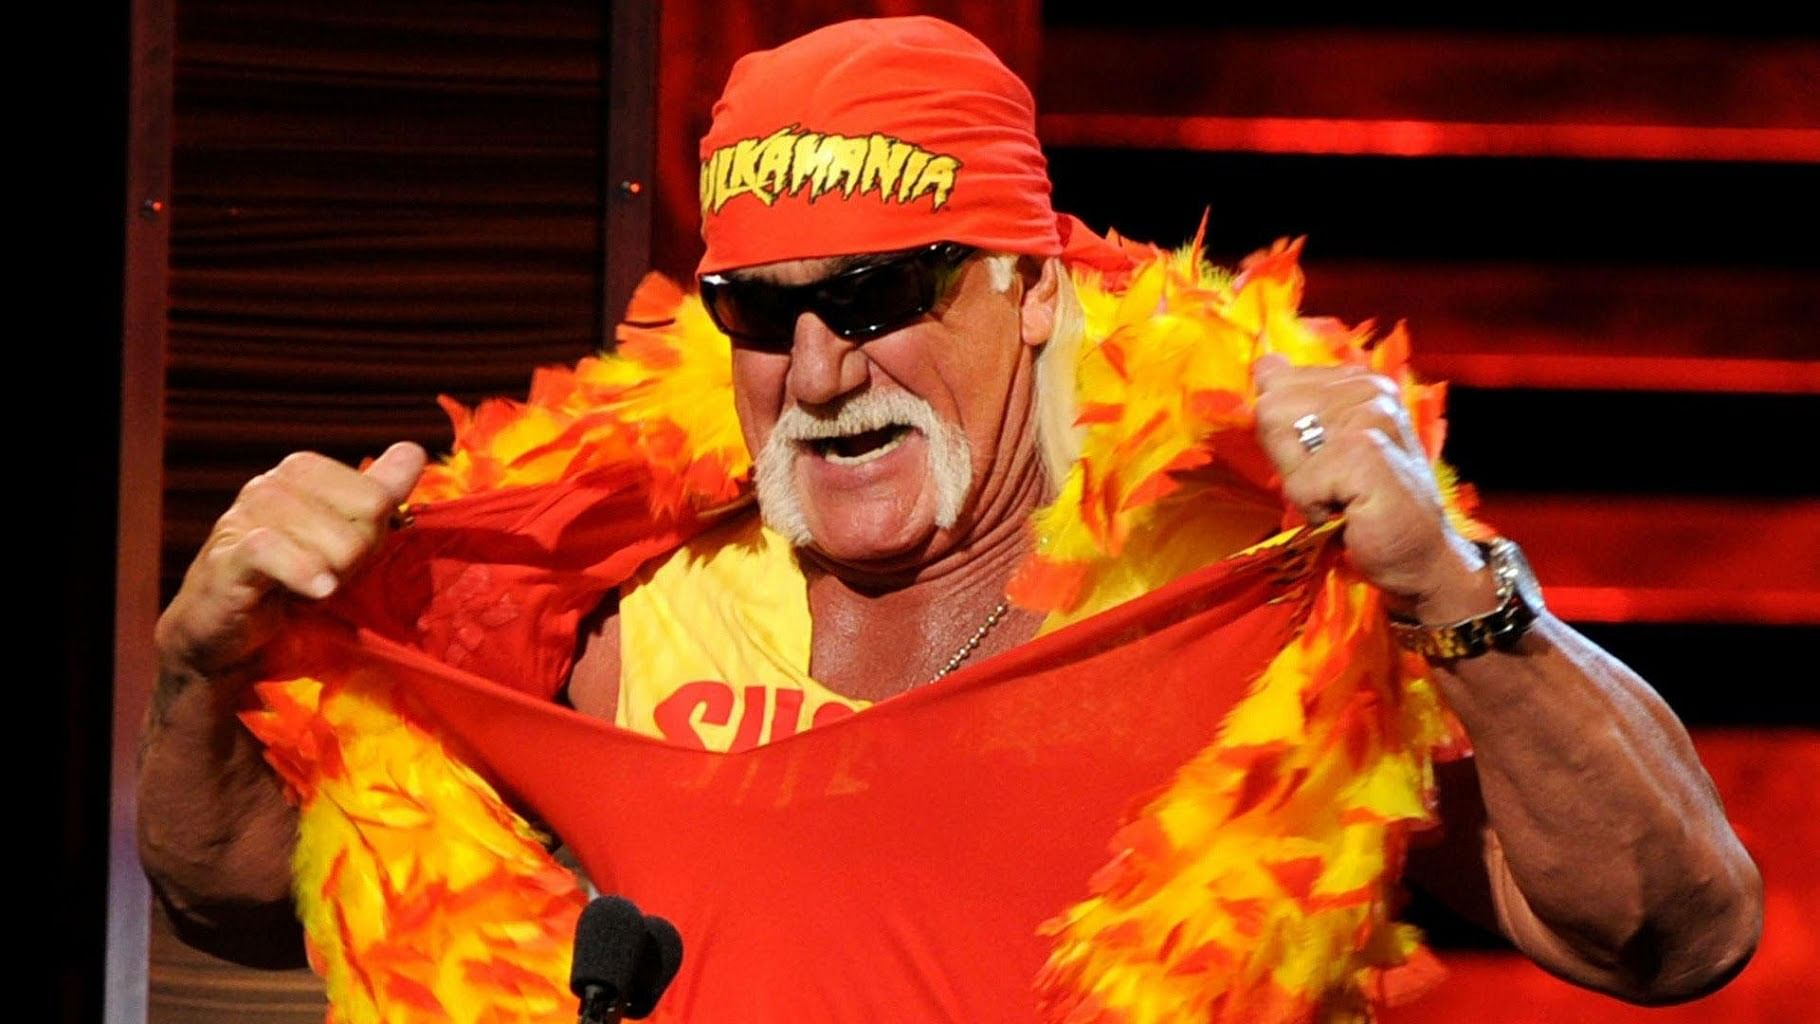 Hulk Hogan appears after Raw goes off air, gives his predictions on HIAC matches